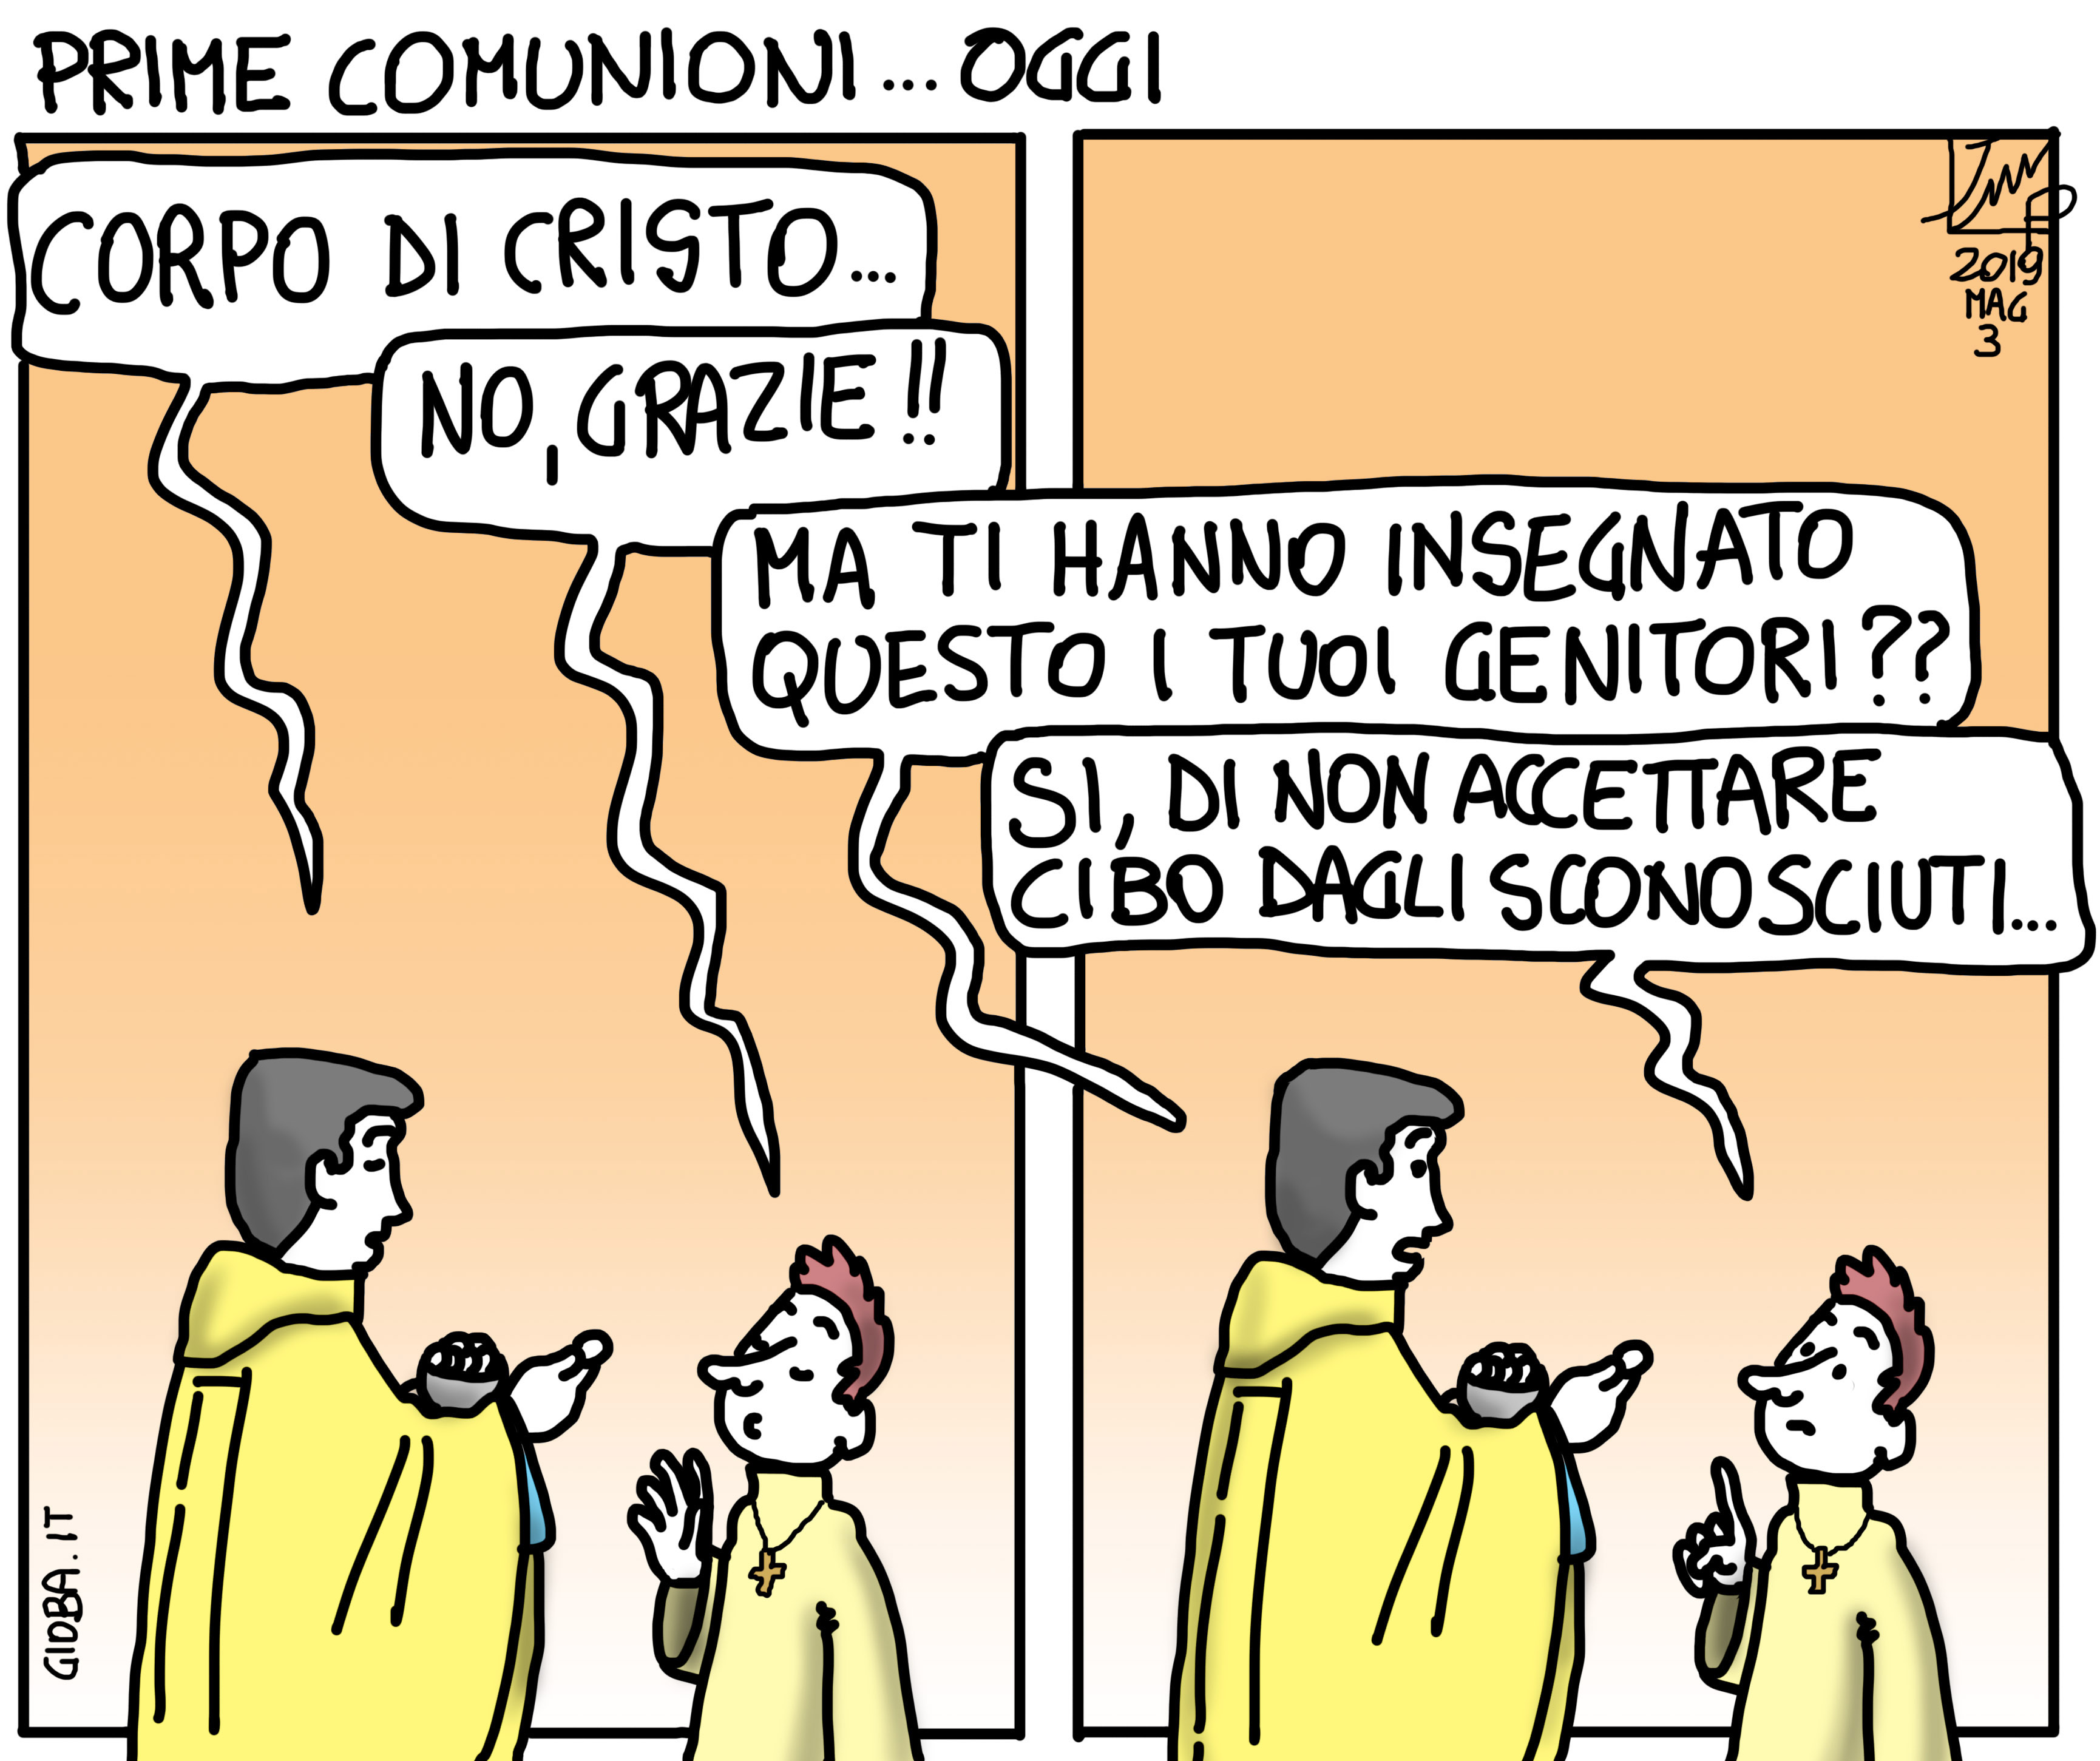 prime-comunioni-oggi-colored-big